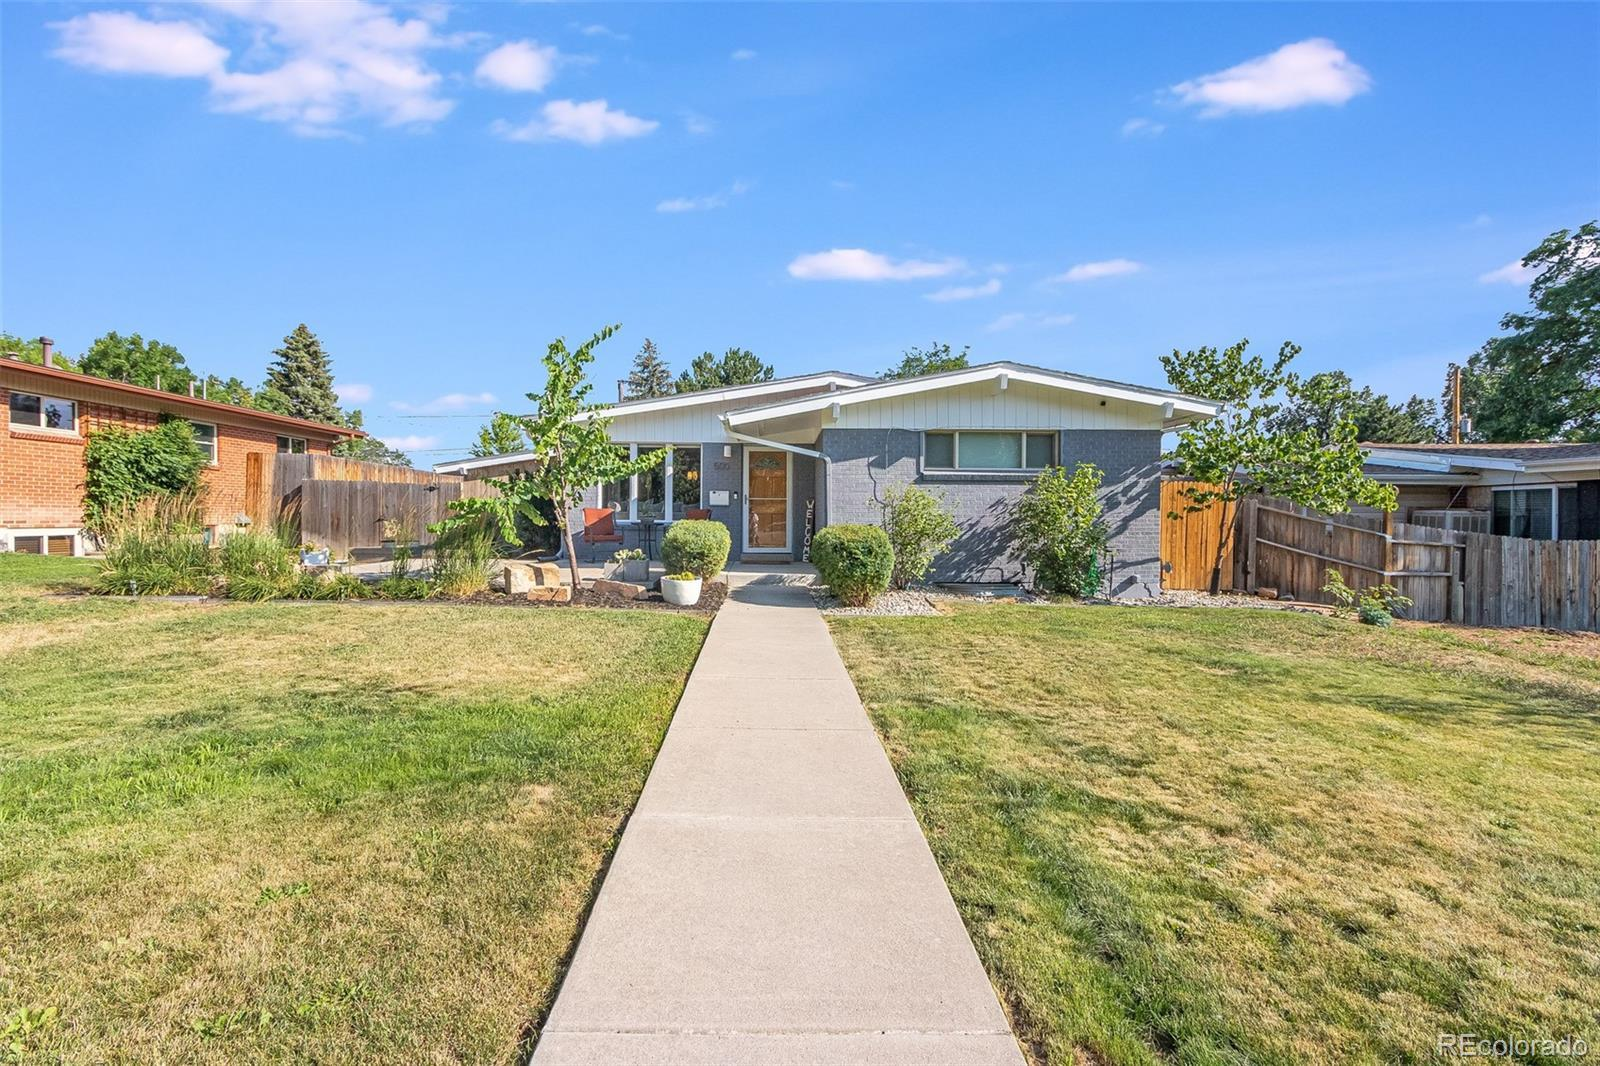 500 W Midway Boulevard, Broomfield, CO 80020 - #: 2689707